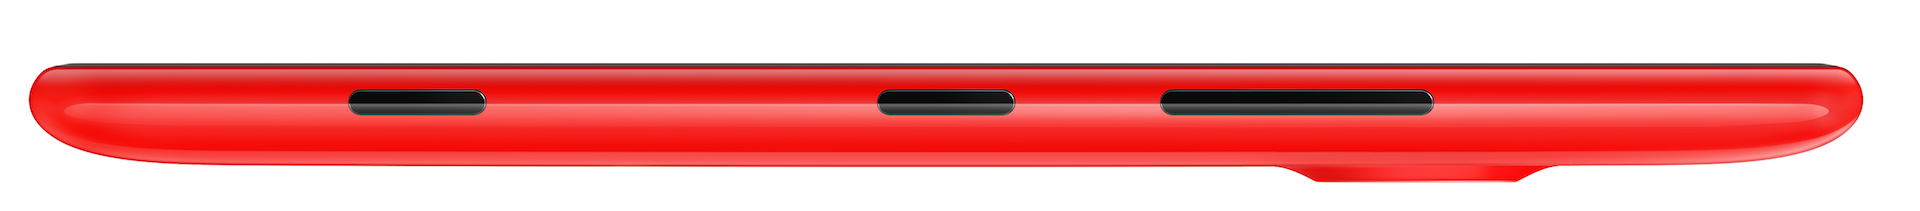 nokia_lumia_1520_red-side.jpg